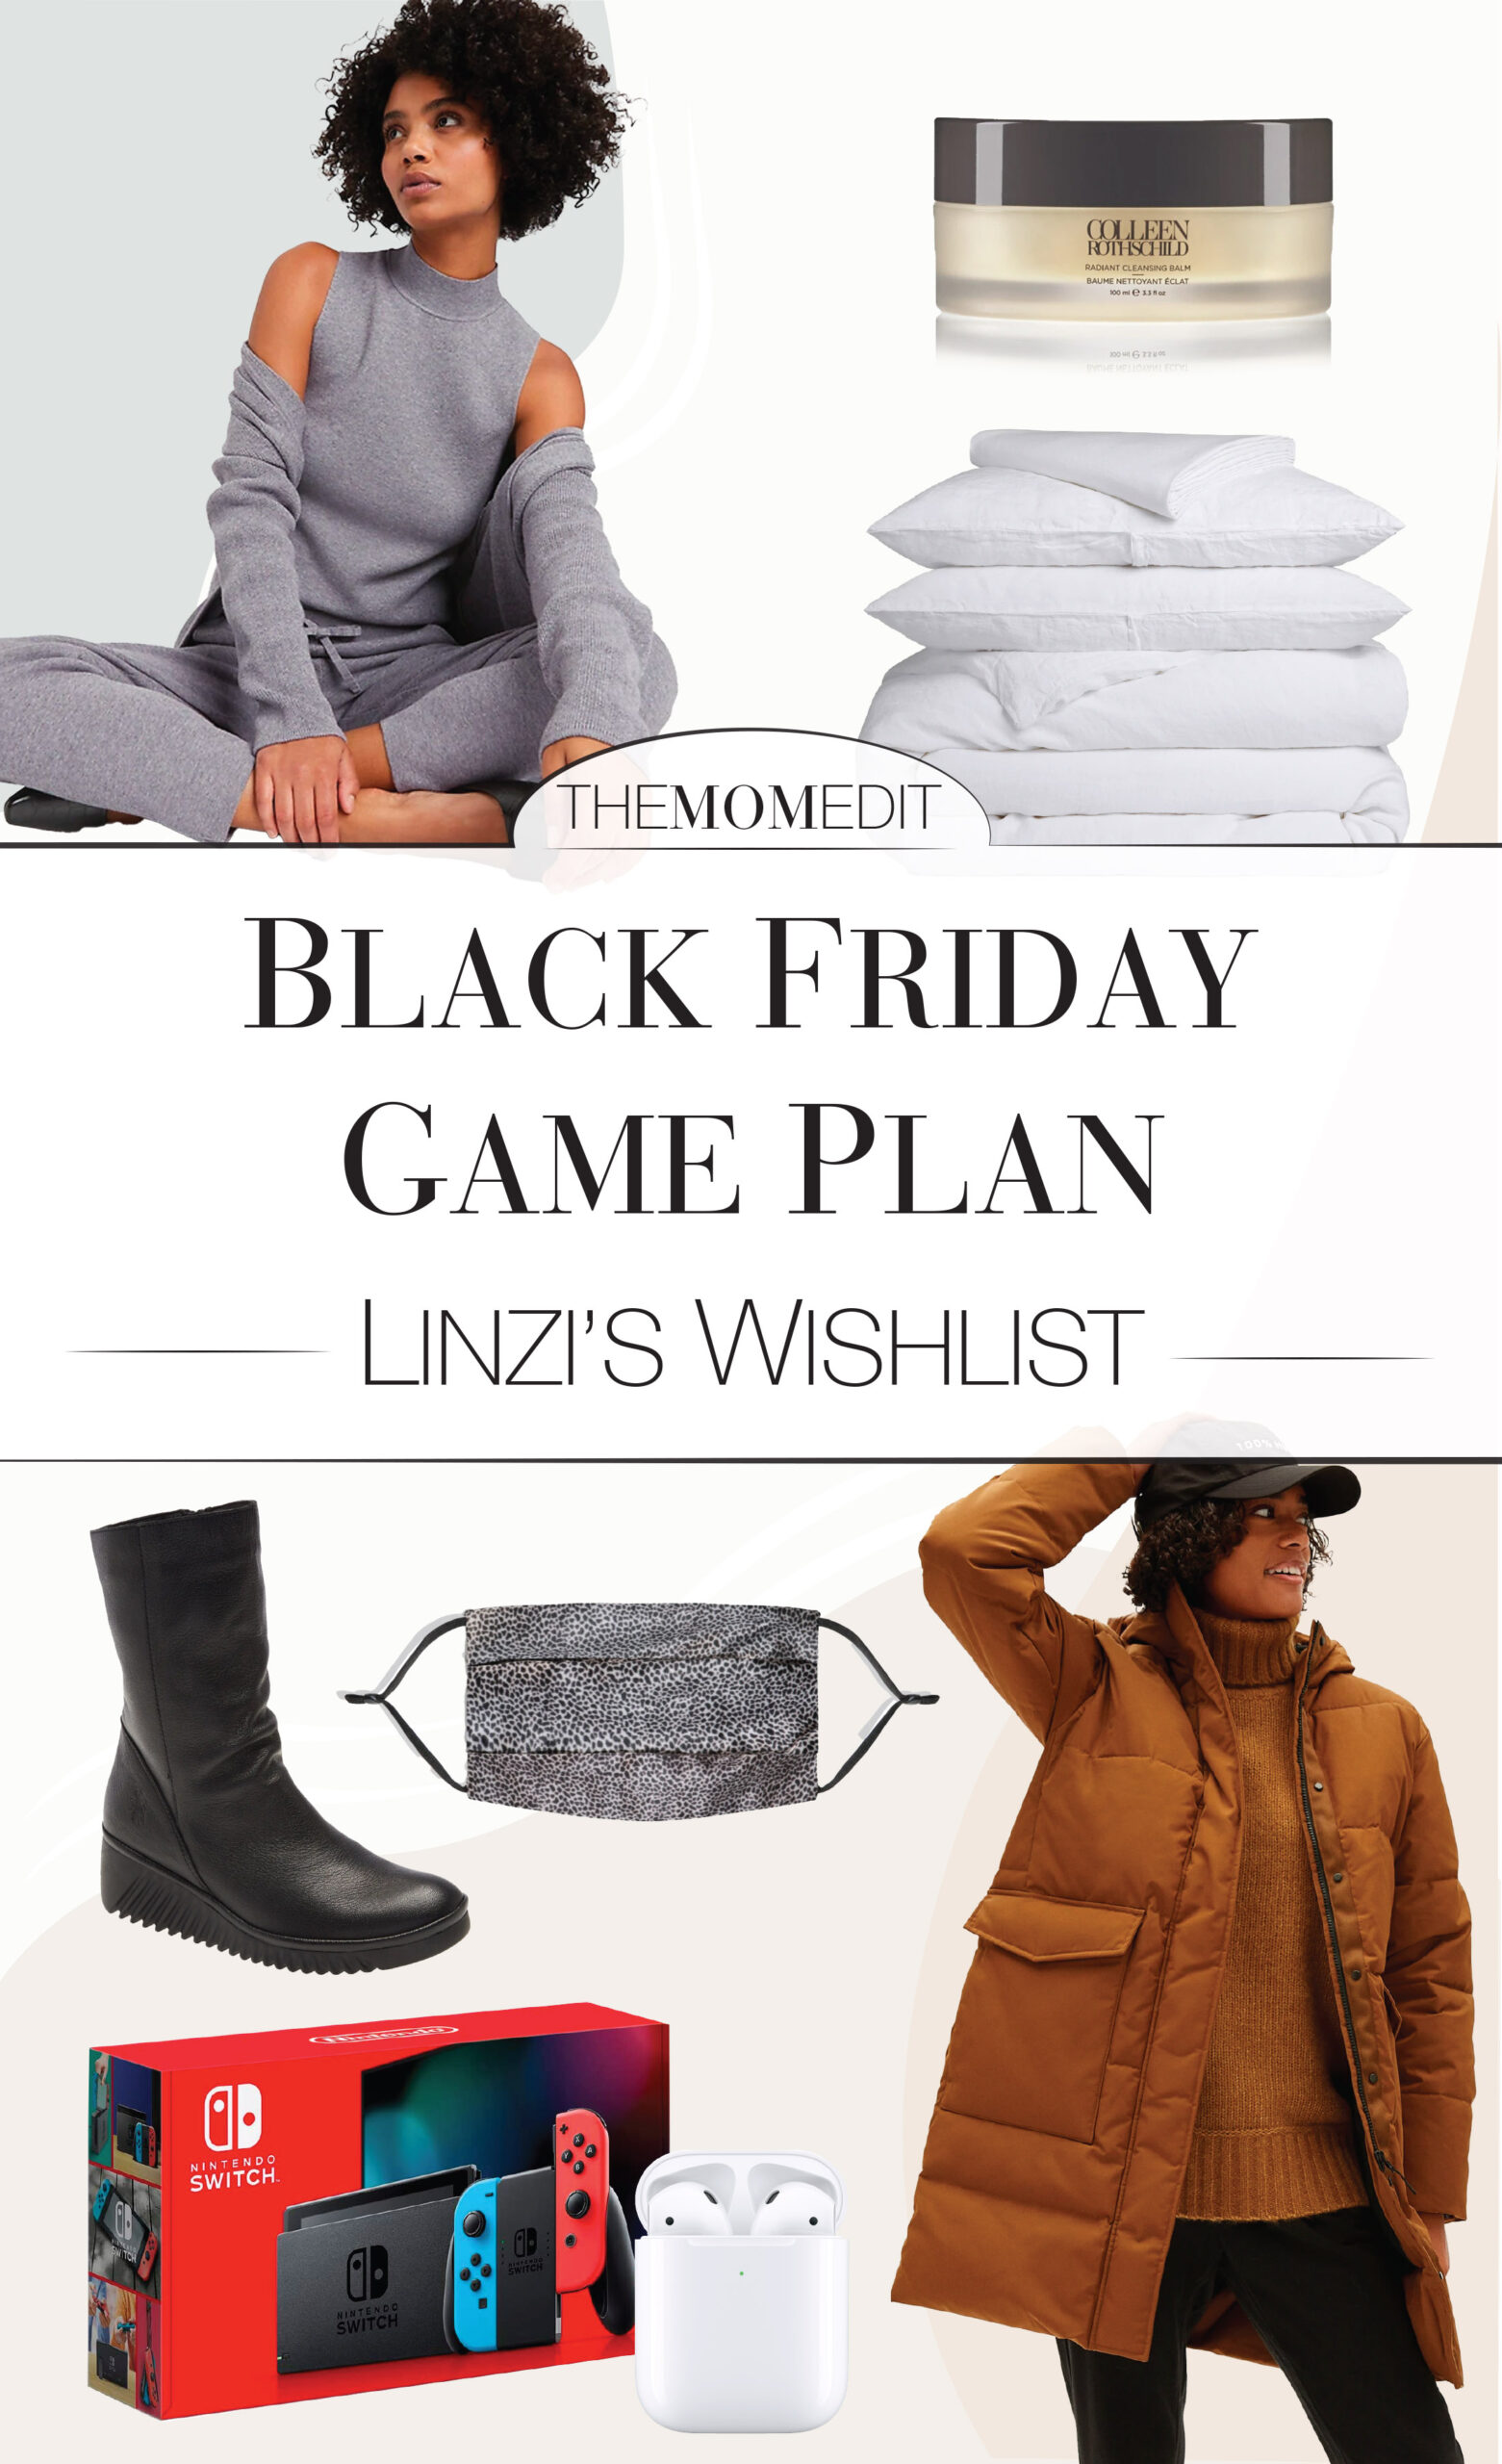 We're eyeing high-quality & value in Black Friday shopping deals. Parachute Home, Dyson, Nintendo, Apple, Vince & MOTHER Denim. Game plan inside.